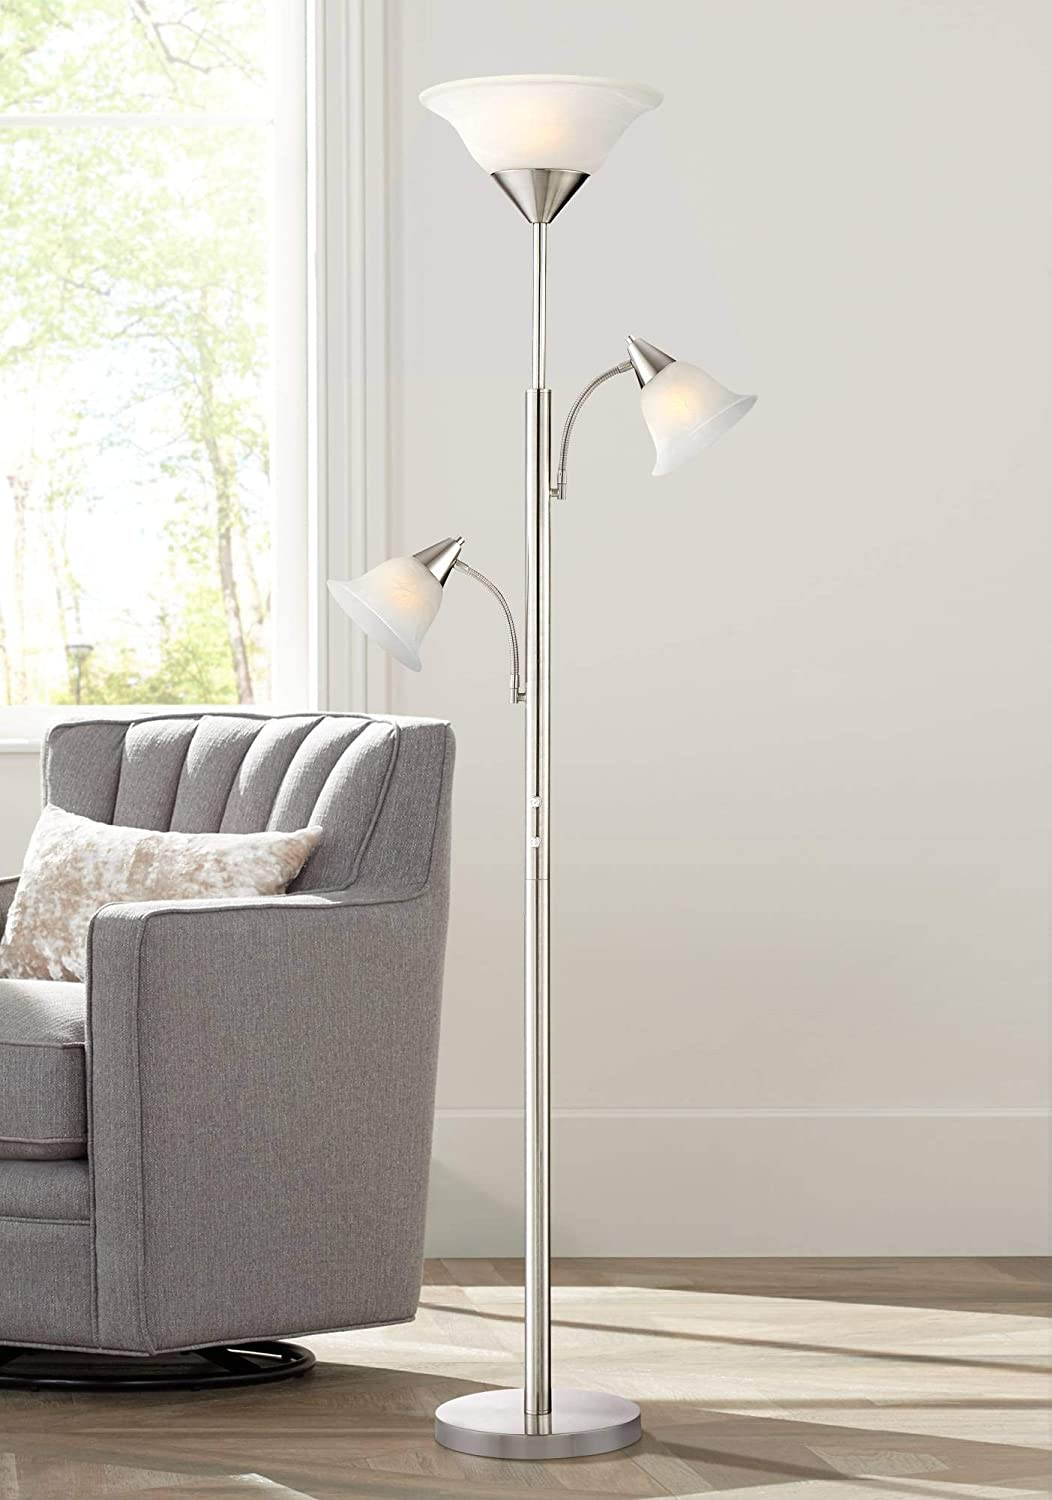 Jordan Modern Torchiere Floor Lamp 3-Light Tree Brushed Steel Alabaster Glass Shades for Living Room Reading Bedroom Office – 360 Lighting